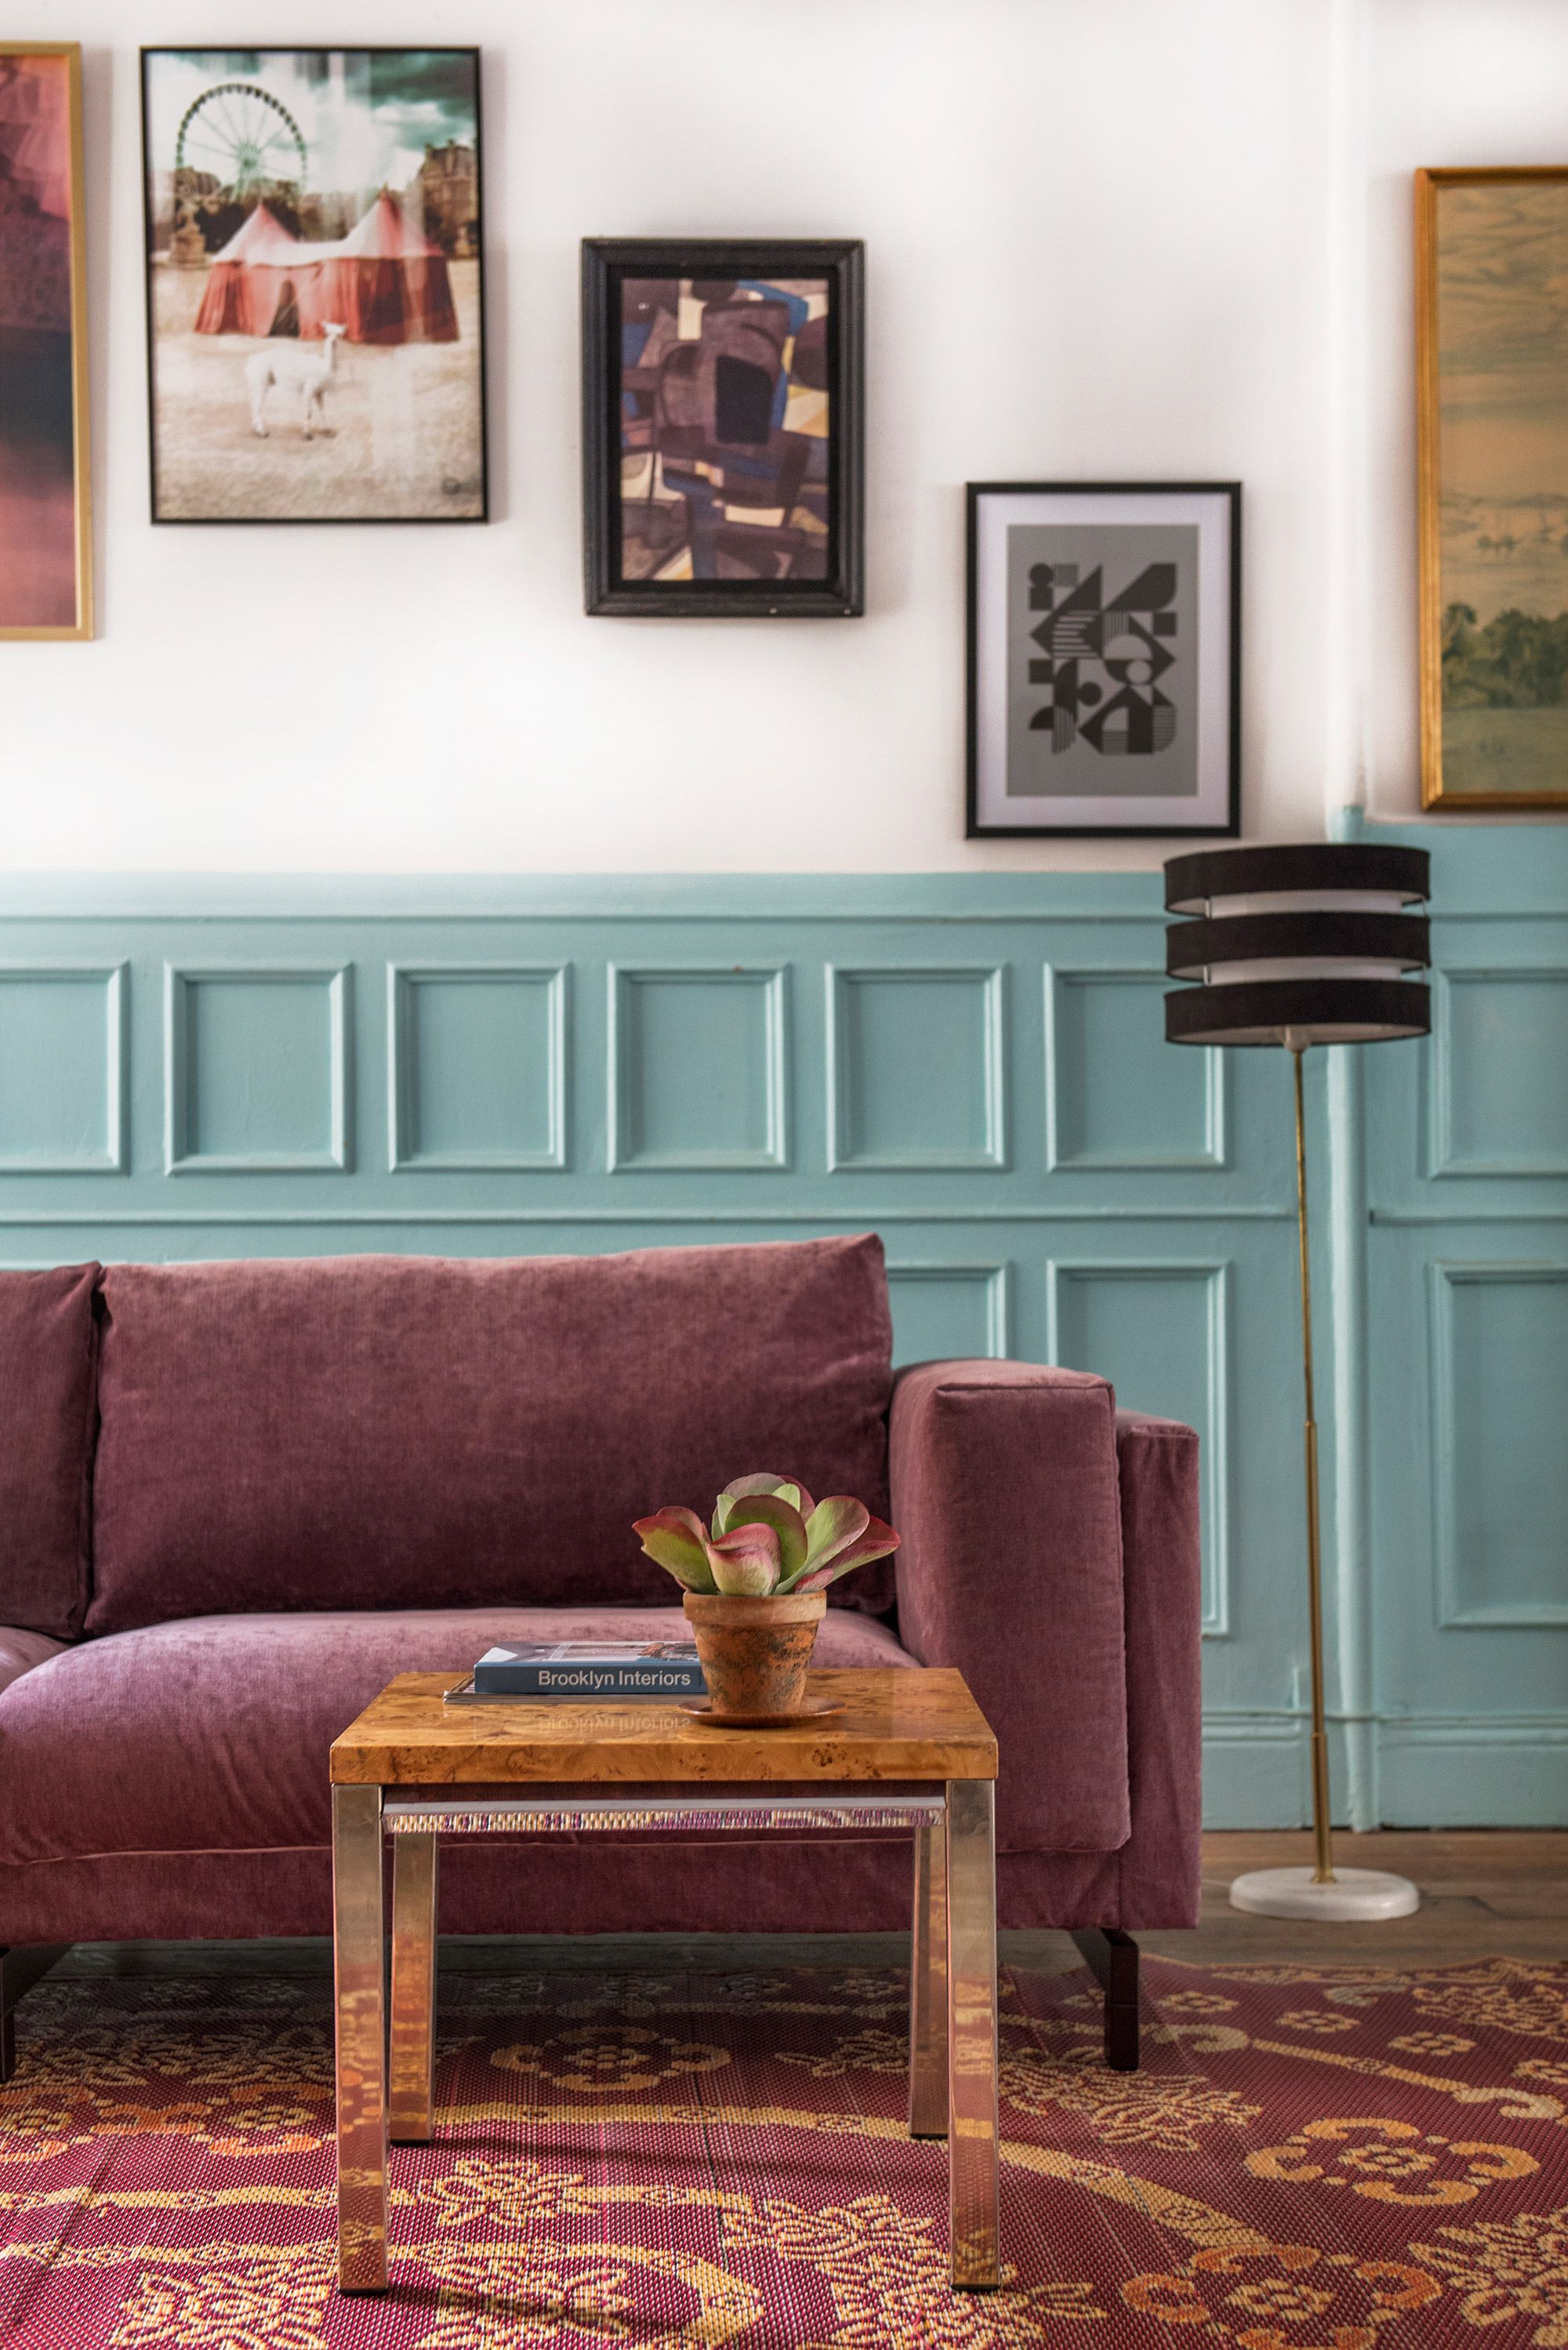 Dusty Pink Velvet Sofa | Retro Coffee Table | Blue Wood Panelling | IKEA  Nockeby Sofa With A Bemz Sofa Cover In Clover Velvet | Home And Work Space  ...